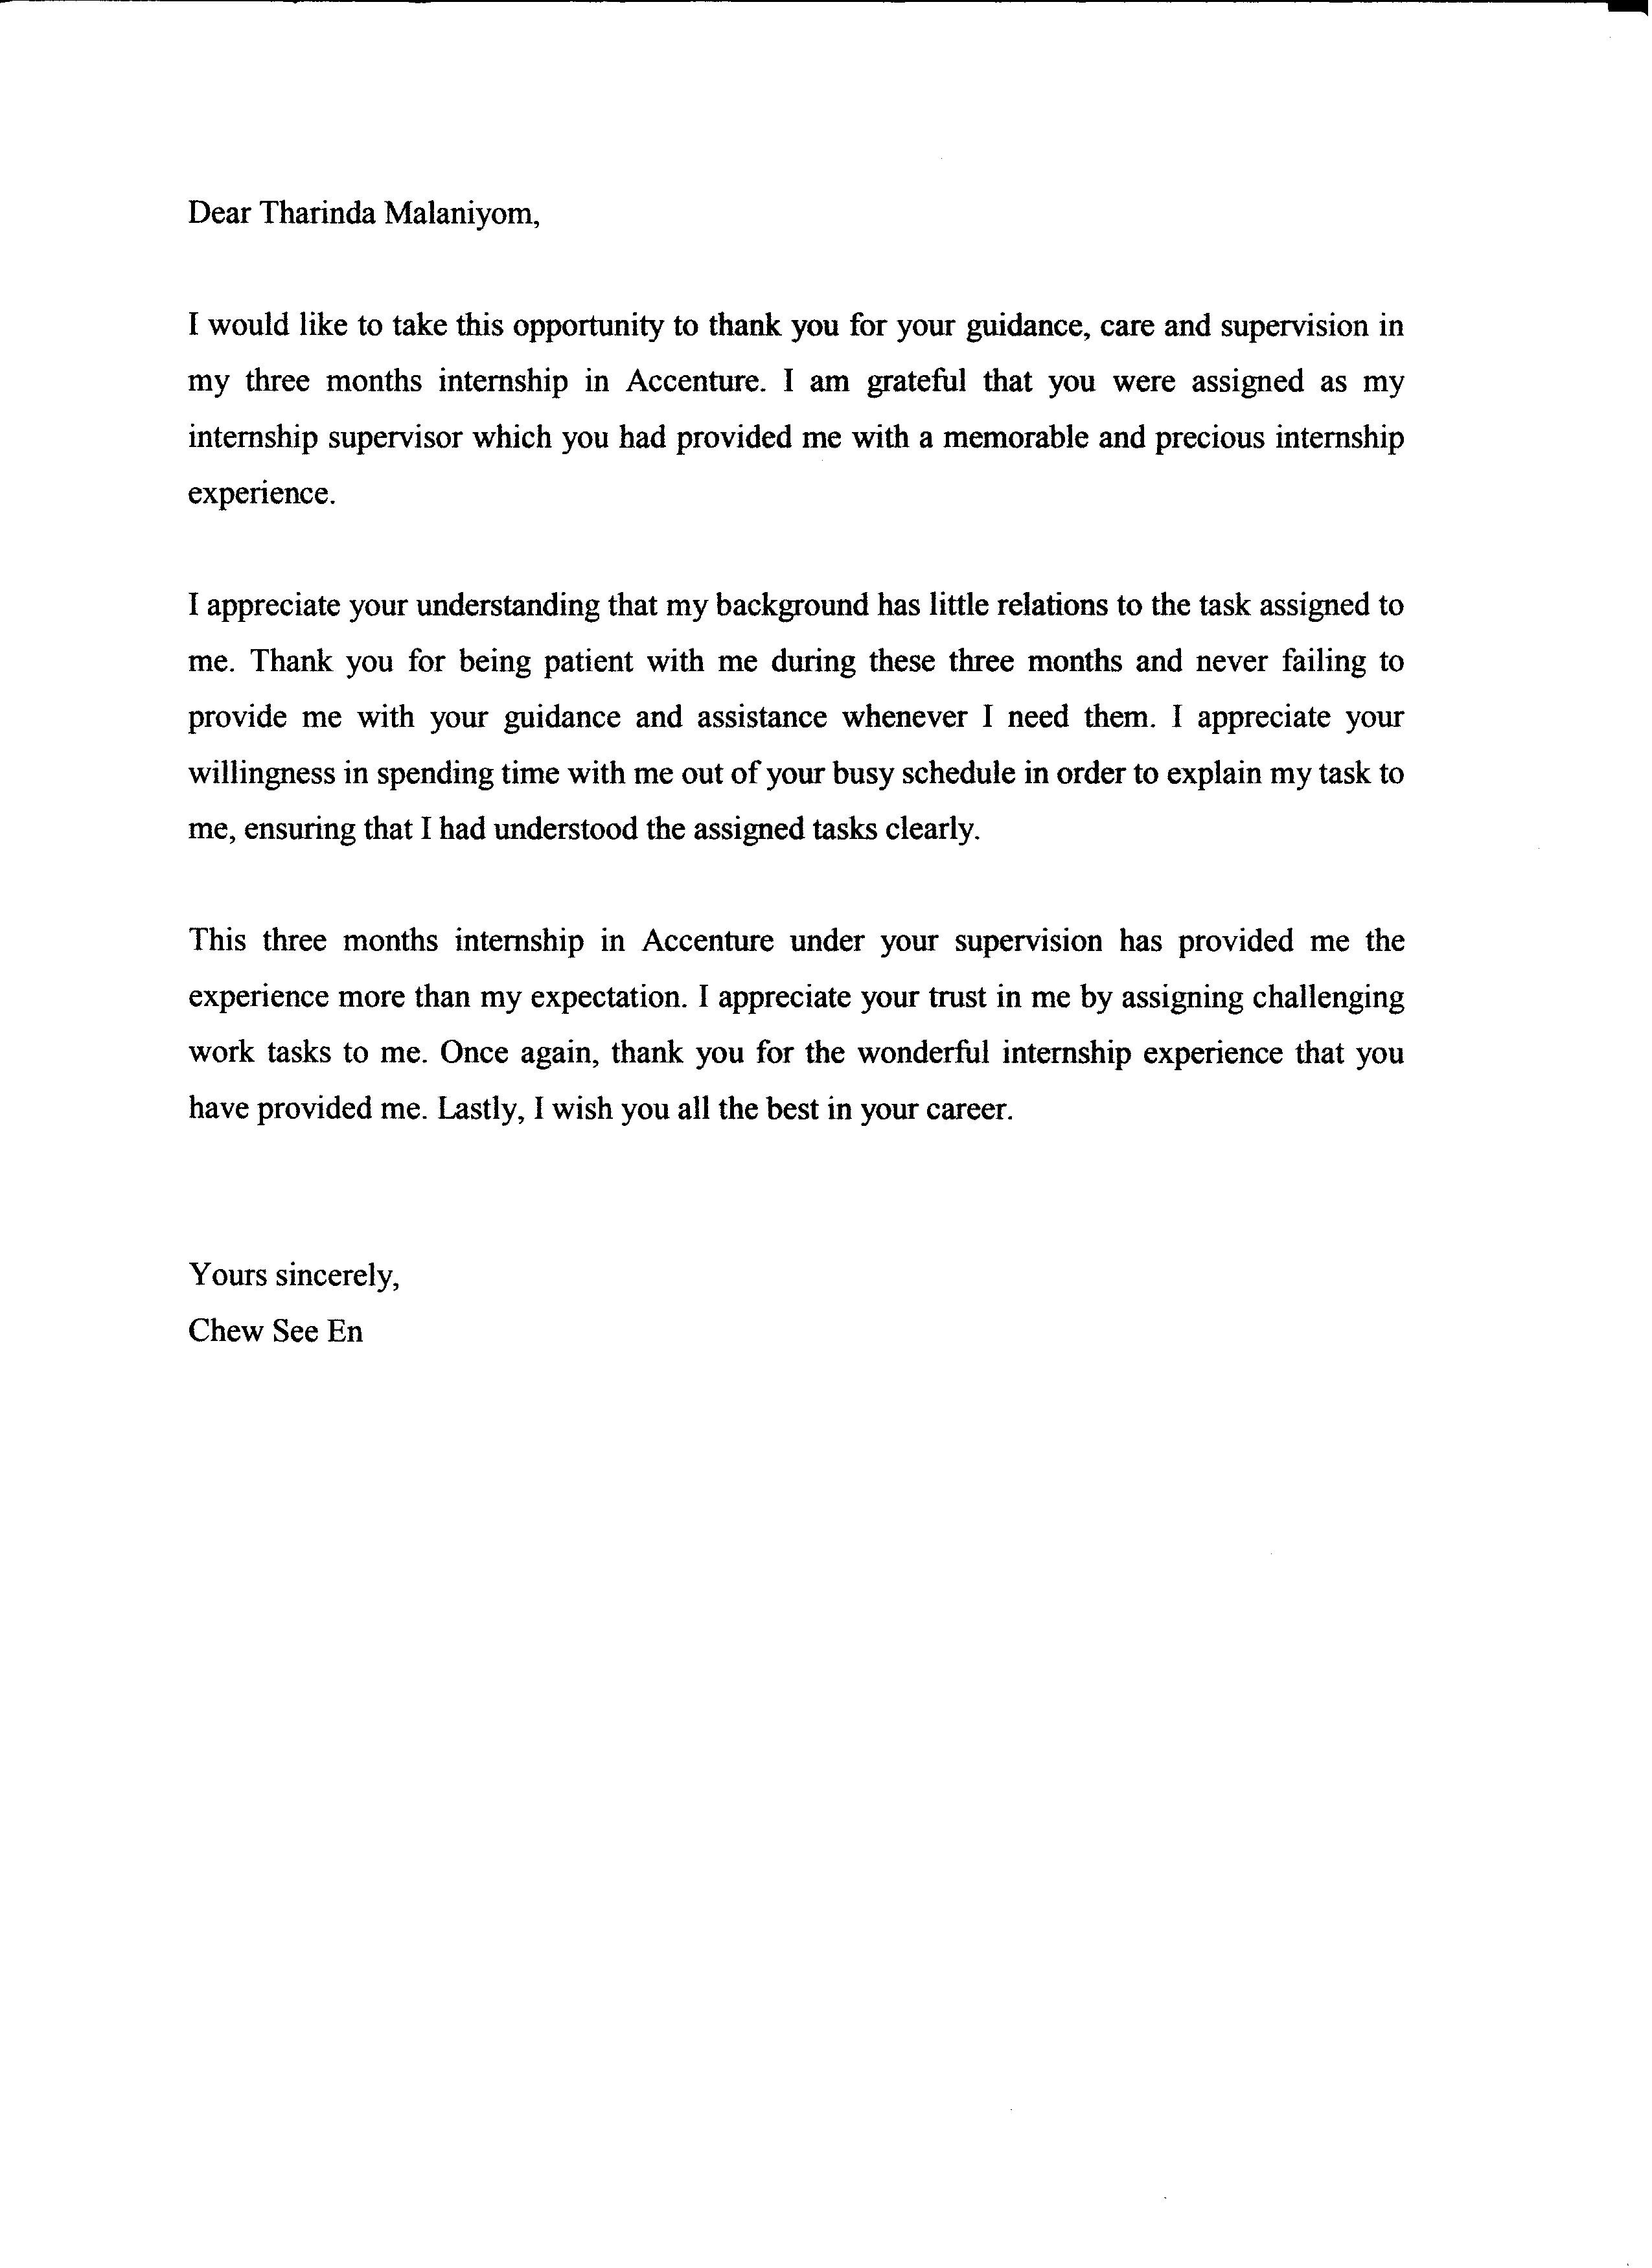 6 document of internship chew see en document 3 thank you letter to supervisor thecheapjerseys Images